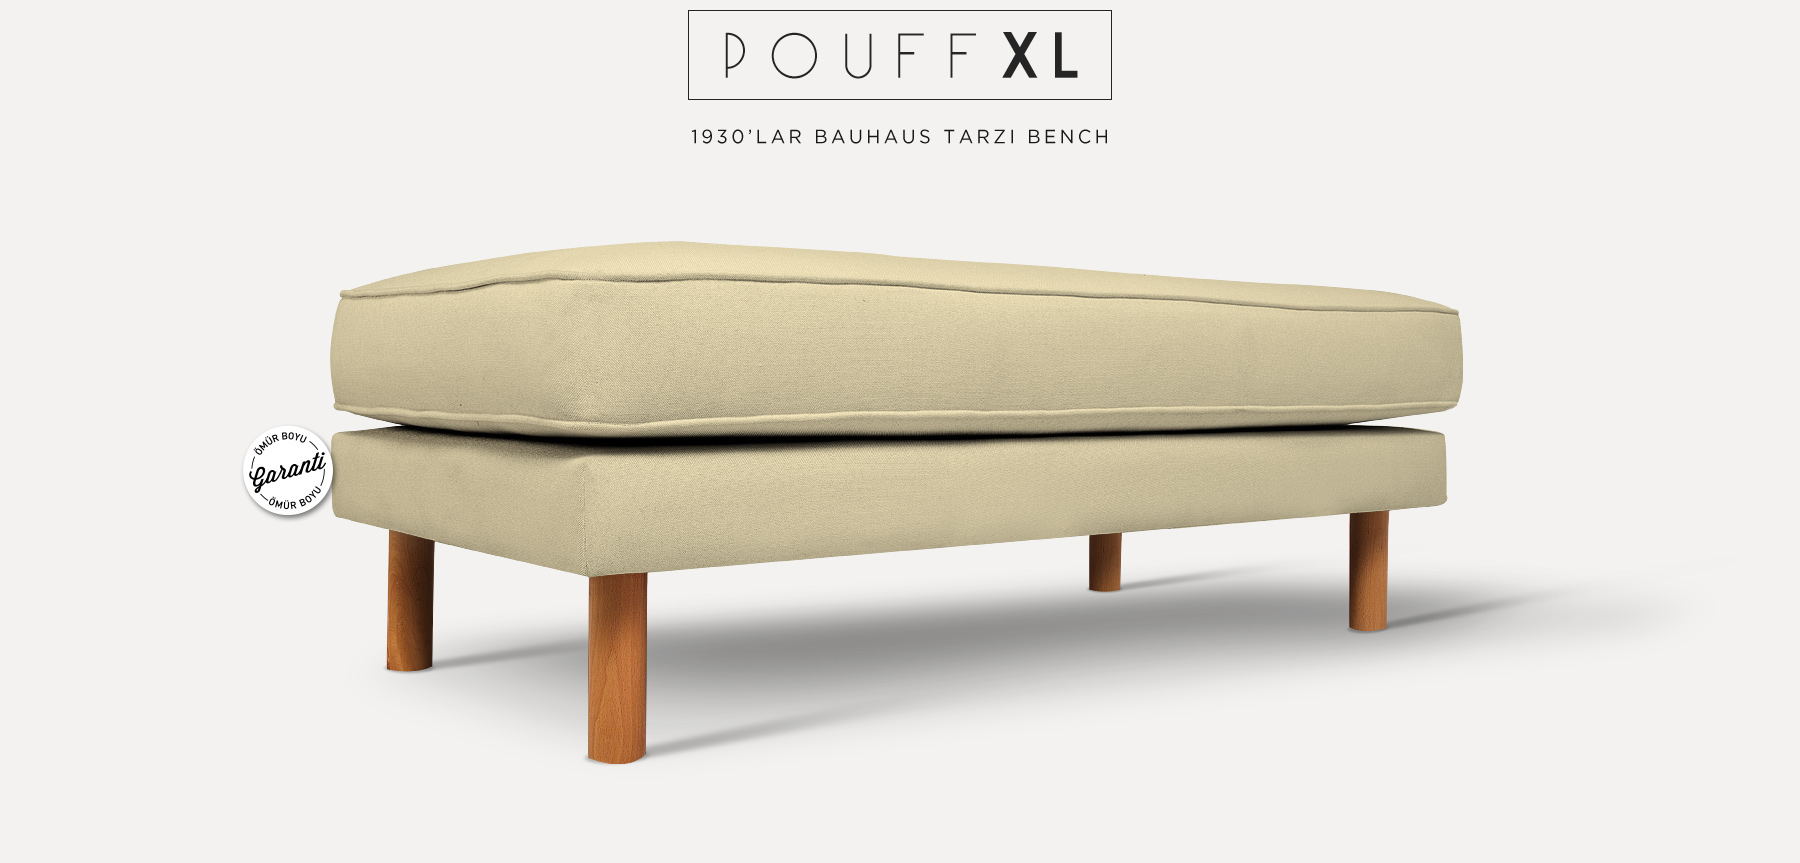 Neoretro™ Pouff Xl Bej Bank'in resmi